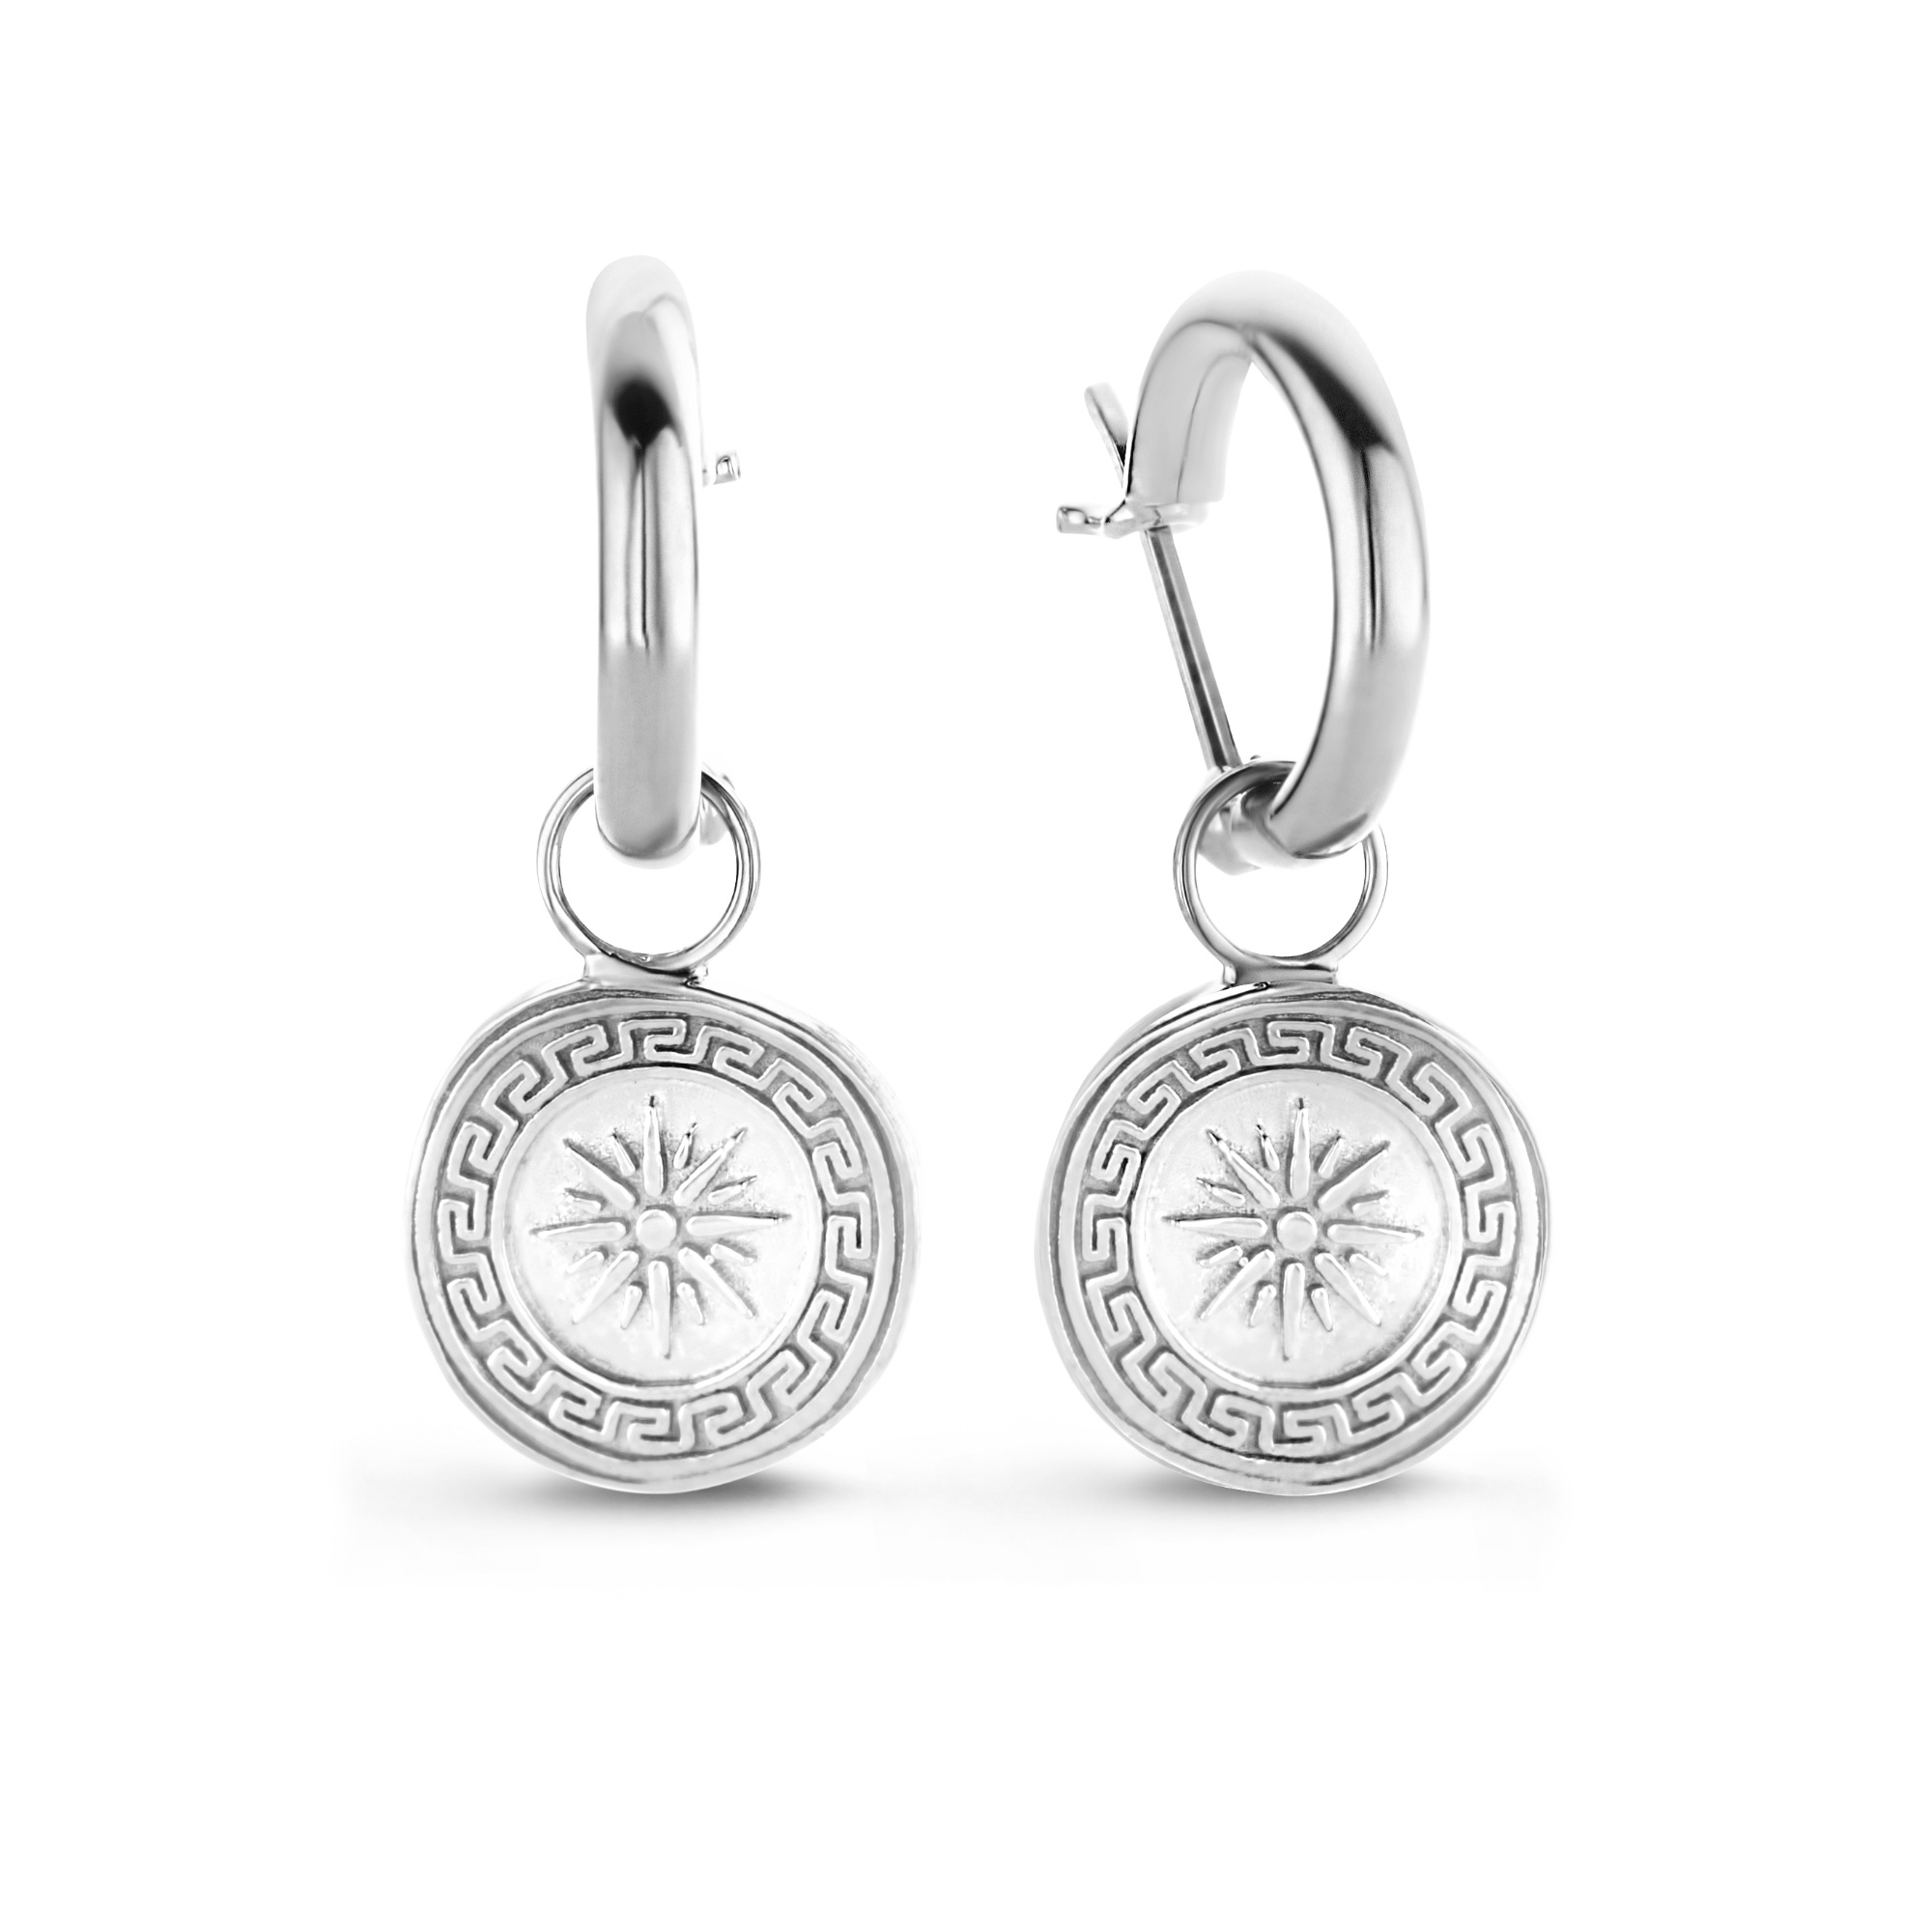 Violet Hamden Athens 925 sterling silver hoop earrings with coins